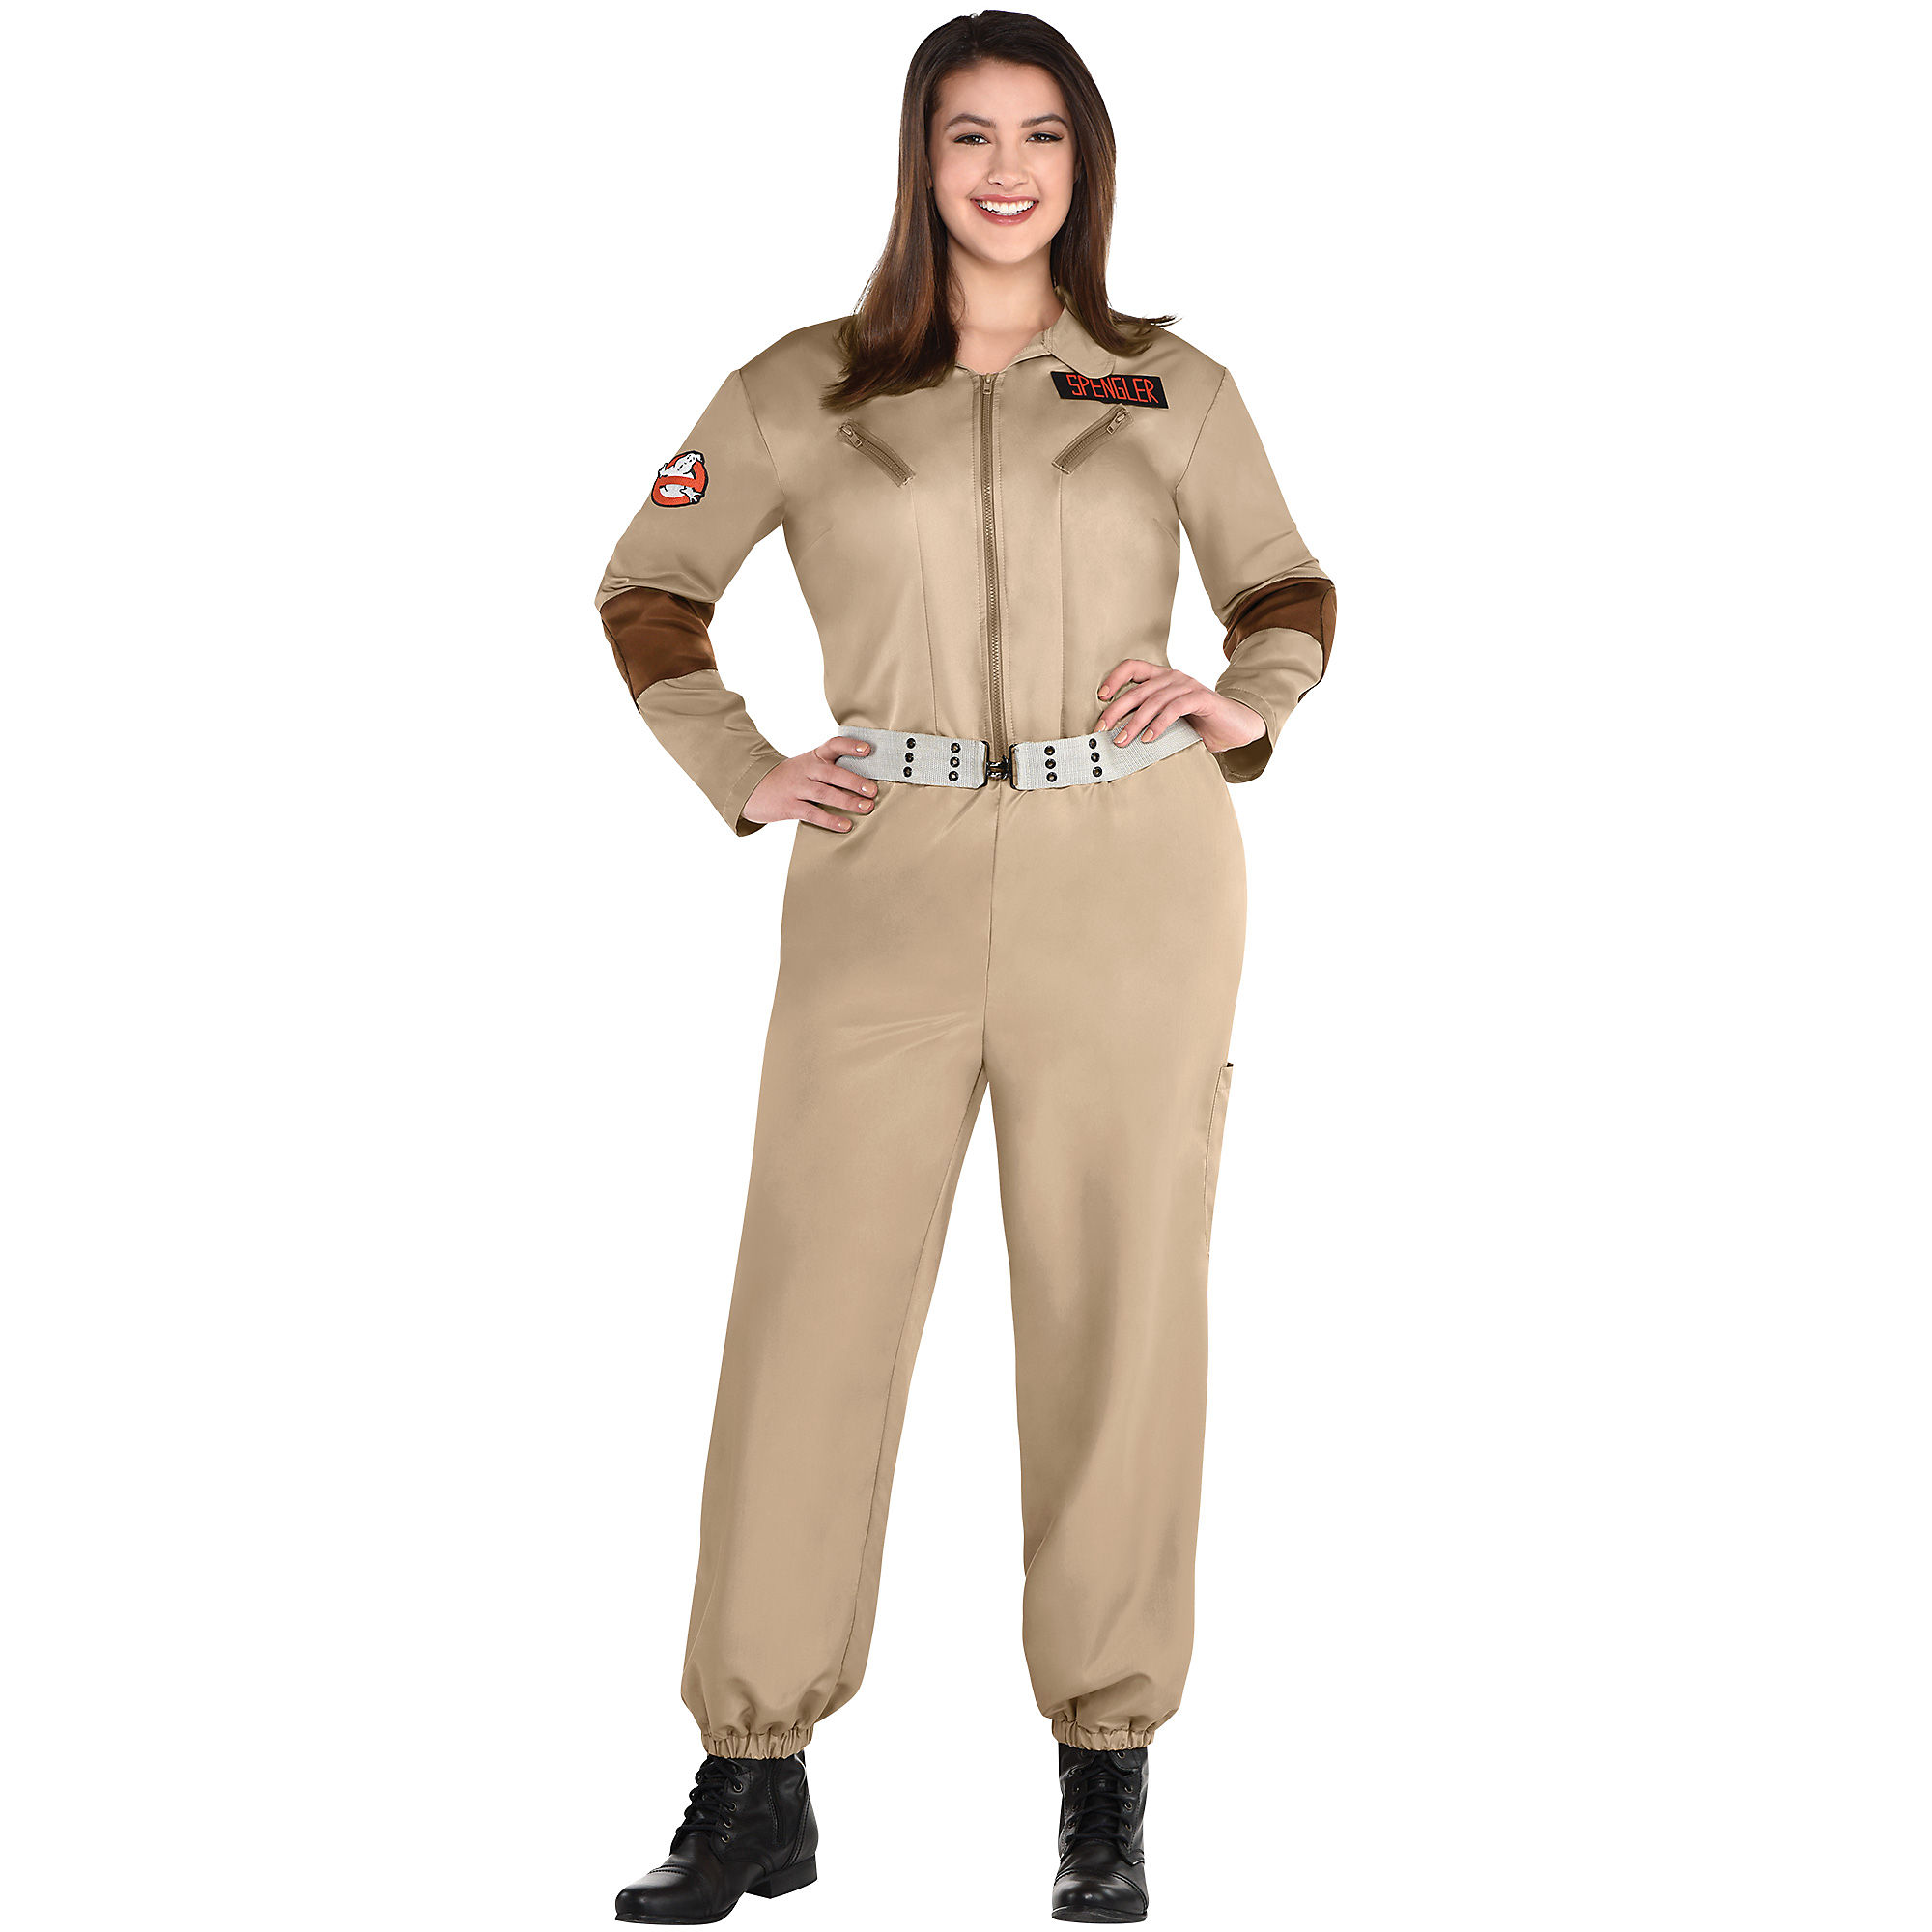 Party City Classic Ghostbusters Halloween Costume for Women, Plus Size,  with Badges